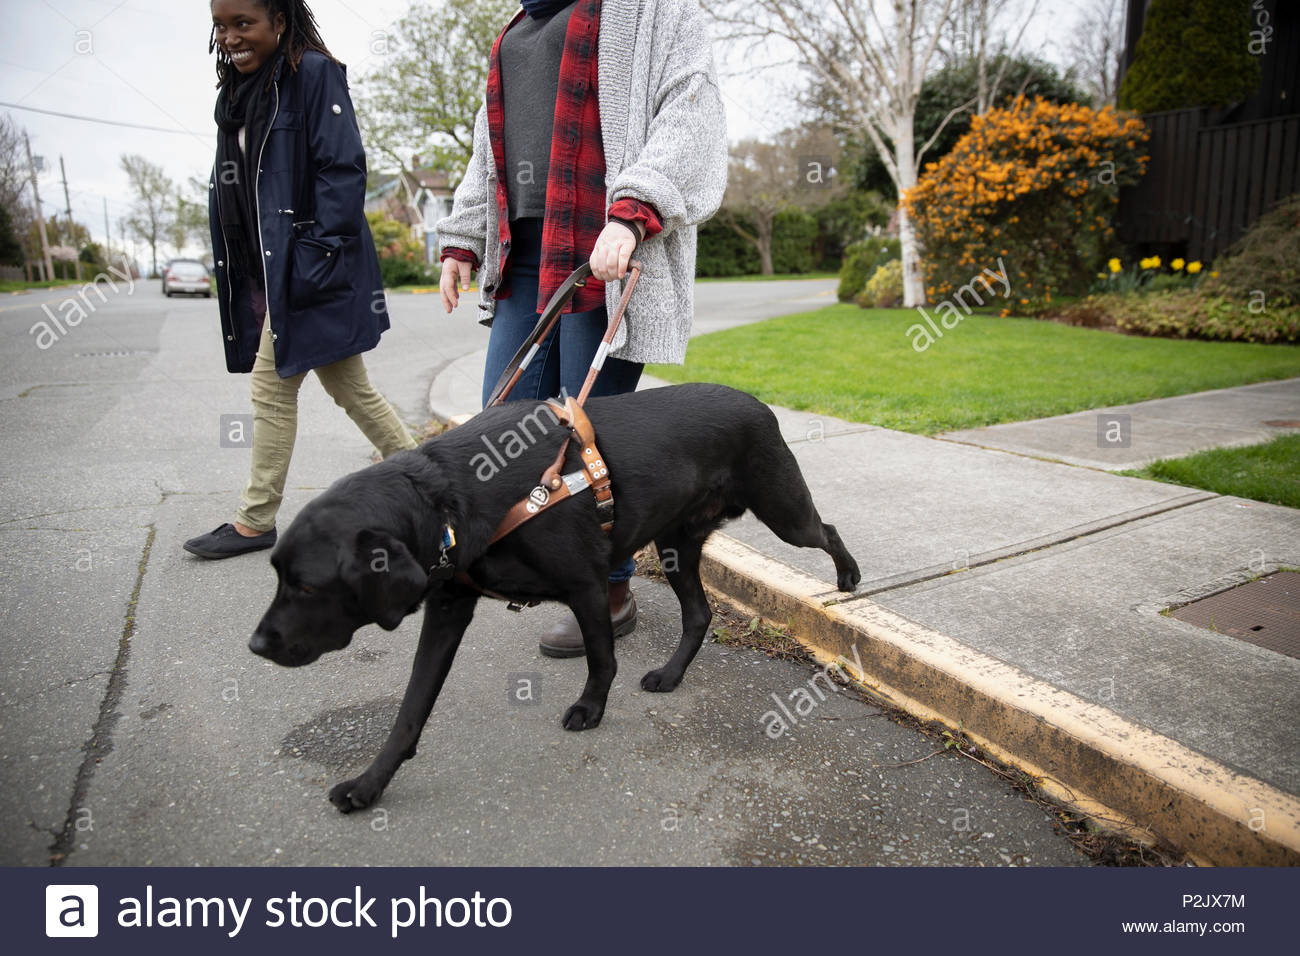 Seeing eye dog leading visually impaired woman walking in street - Stock Image